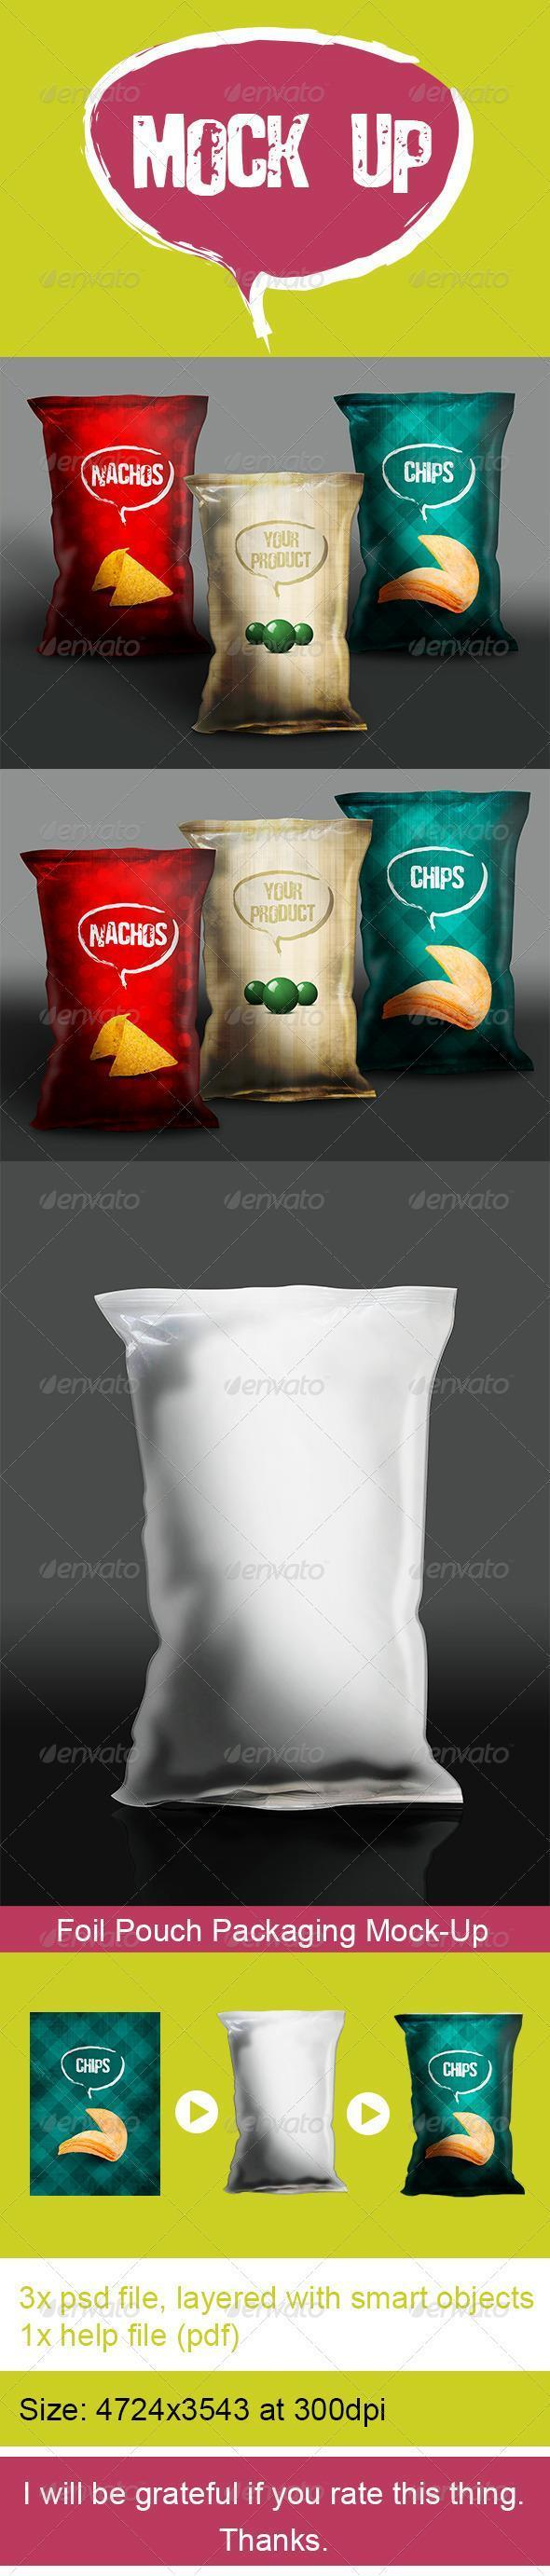 Download Product Packaging Psd Mockup And Template Pouch Packaging Foil Pouches Packaging